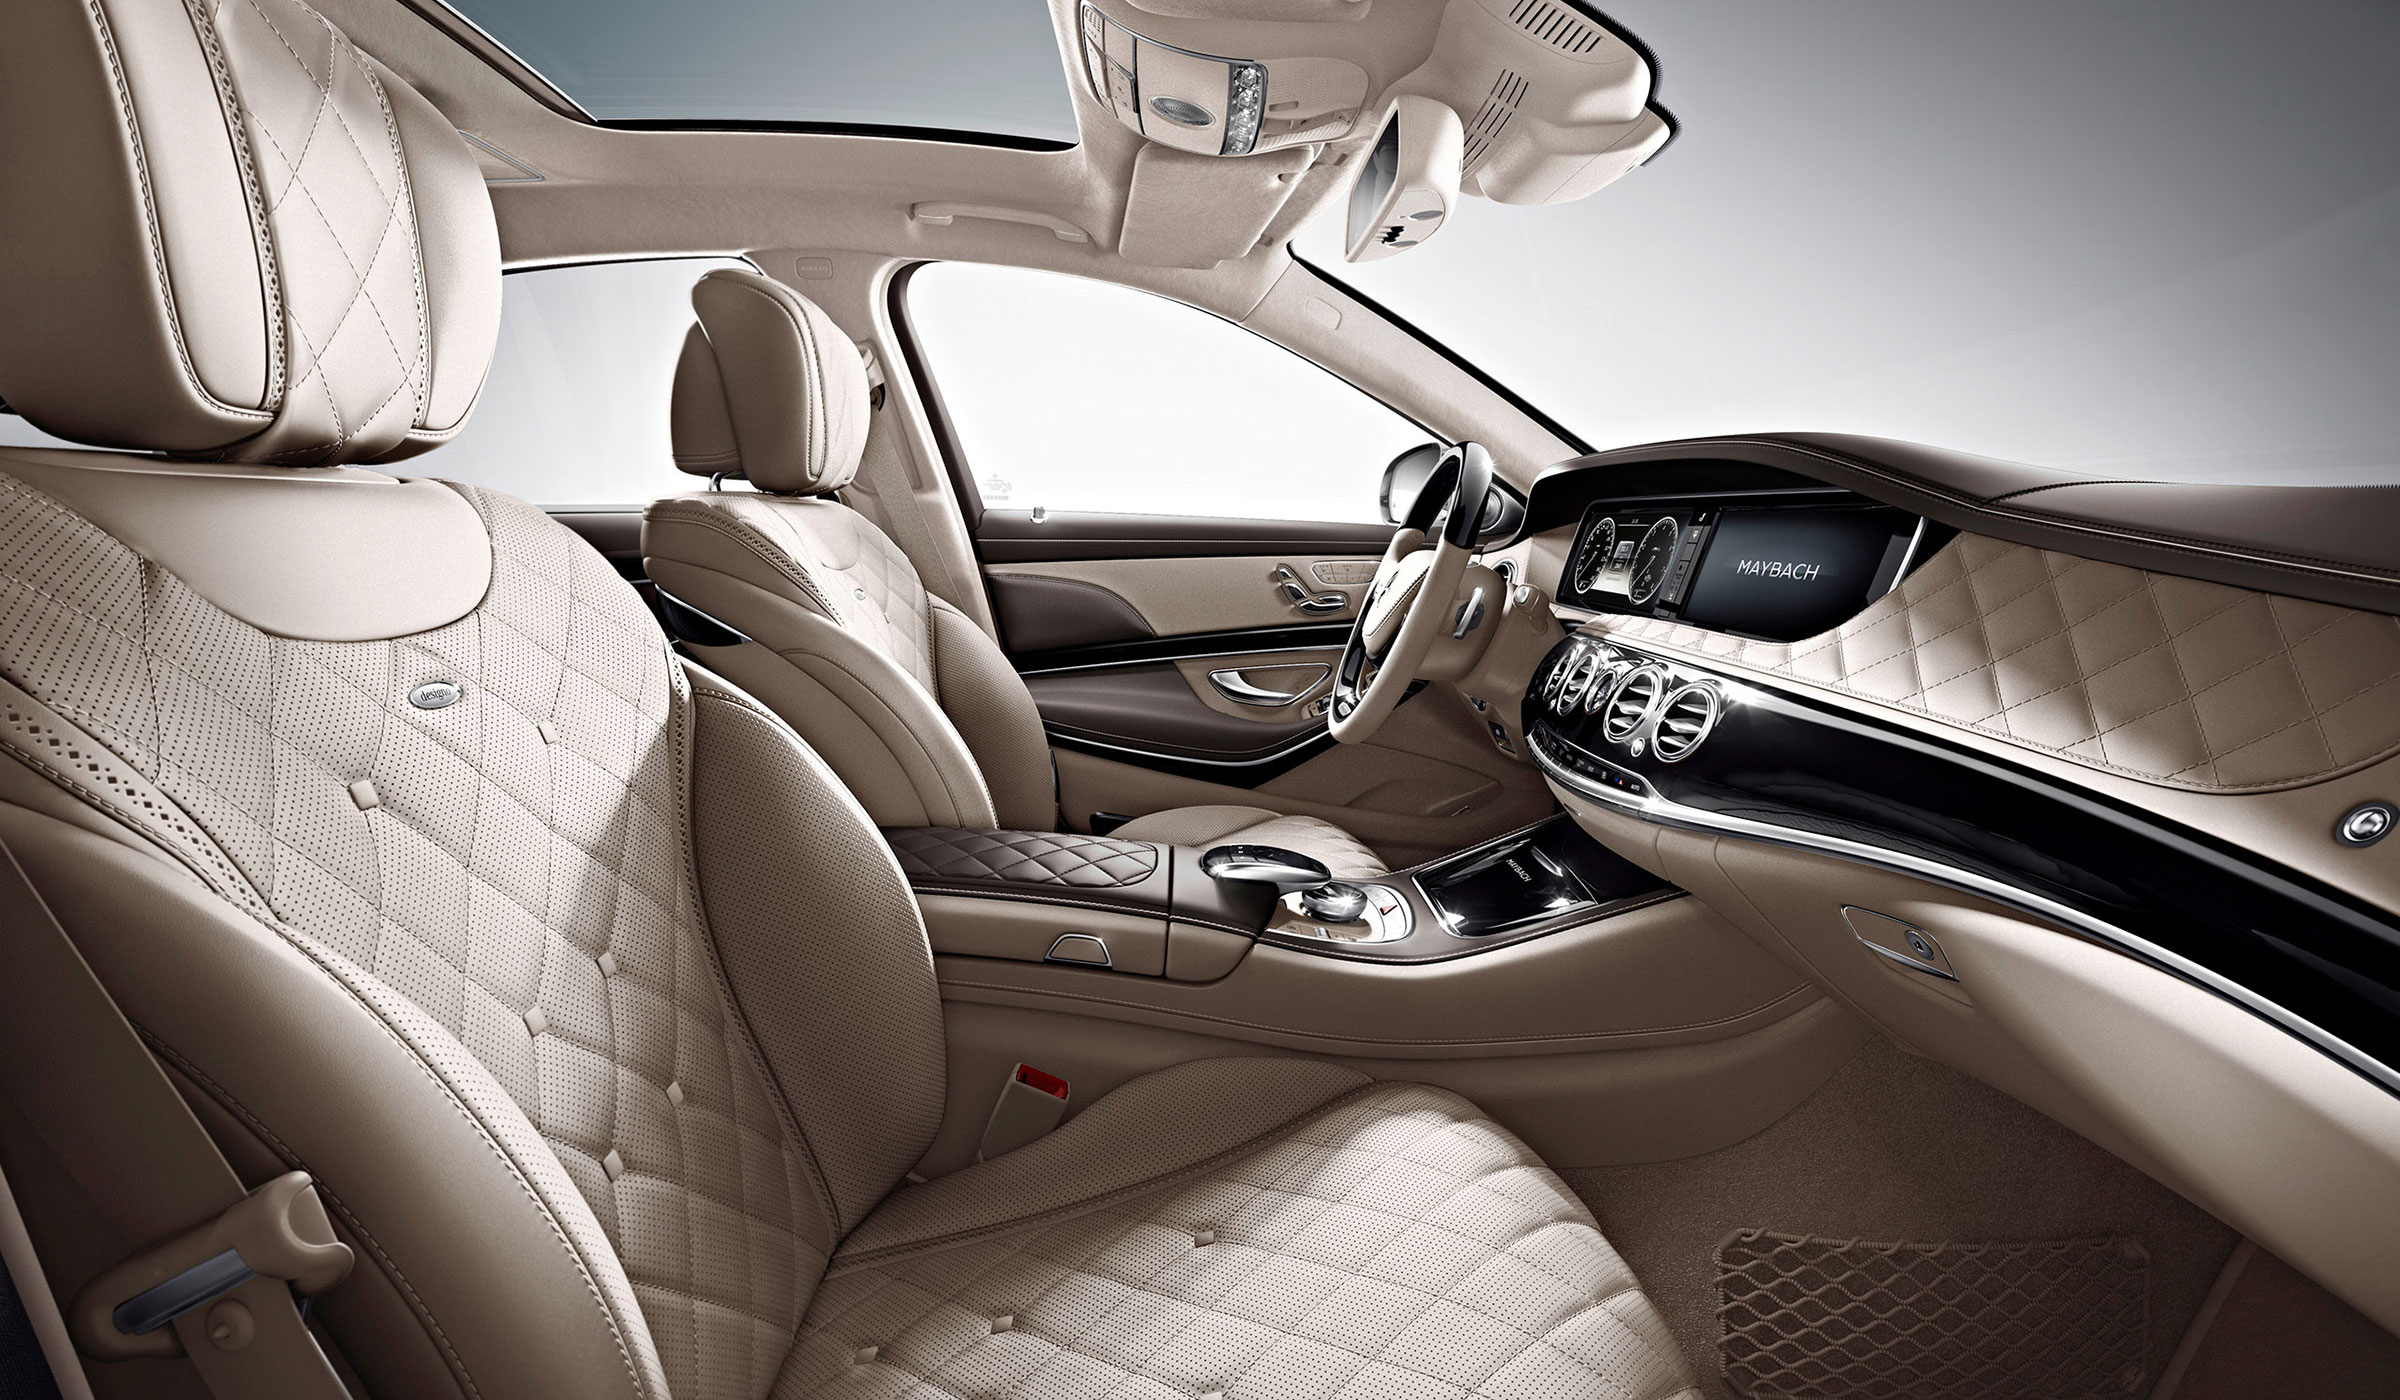 2015-S-CLASS-S600-MAYBACH-FUTURE-GALLERY-005-WR-D